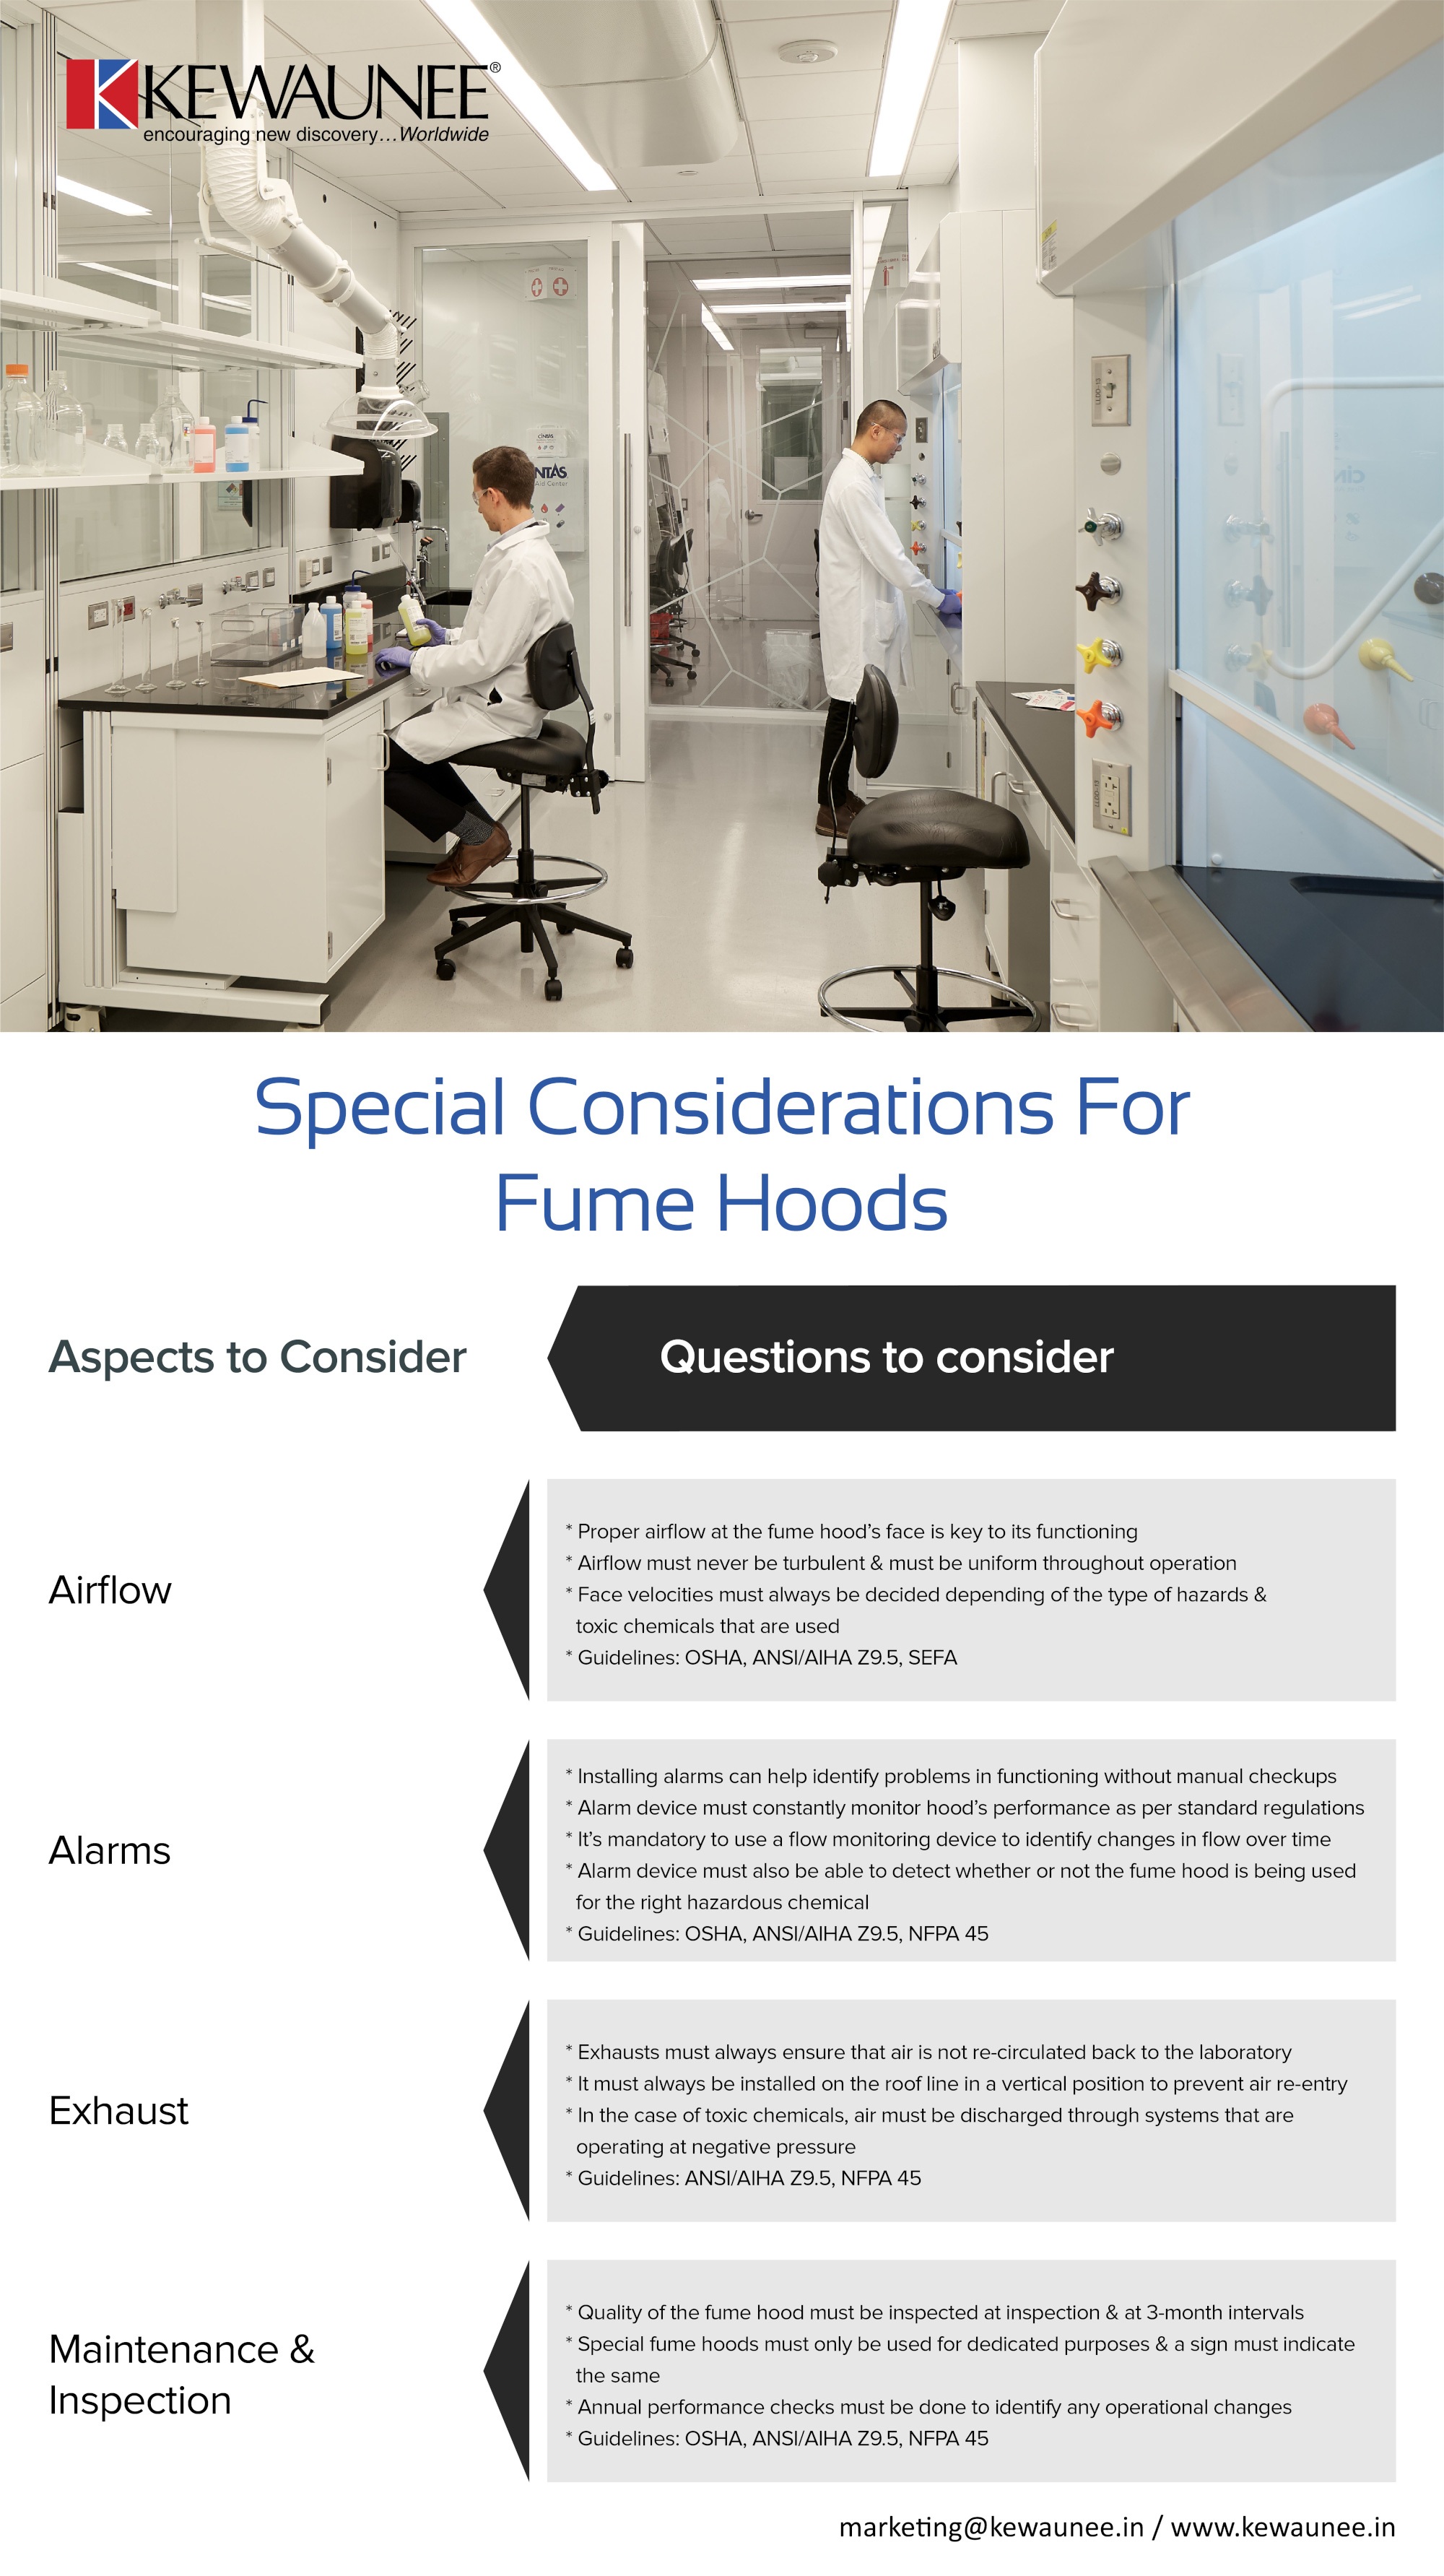 Special considerations for Fume Hoods